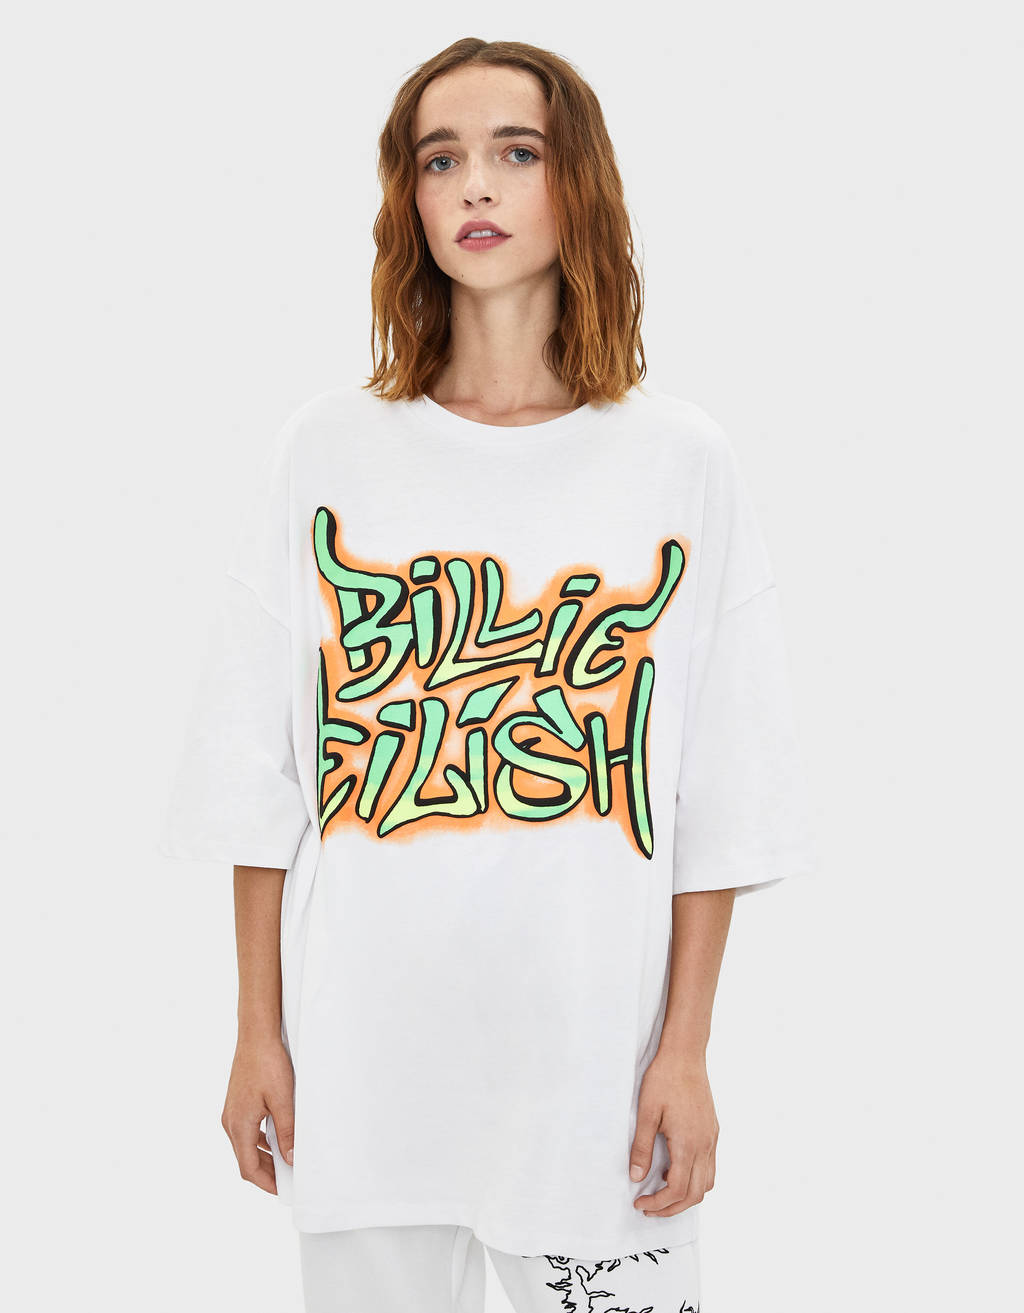 Maglietta con graffiti Billie Eilish x Bershka